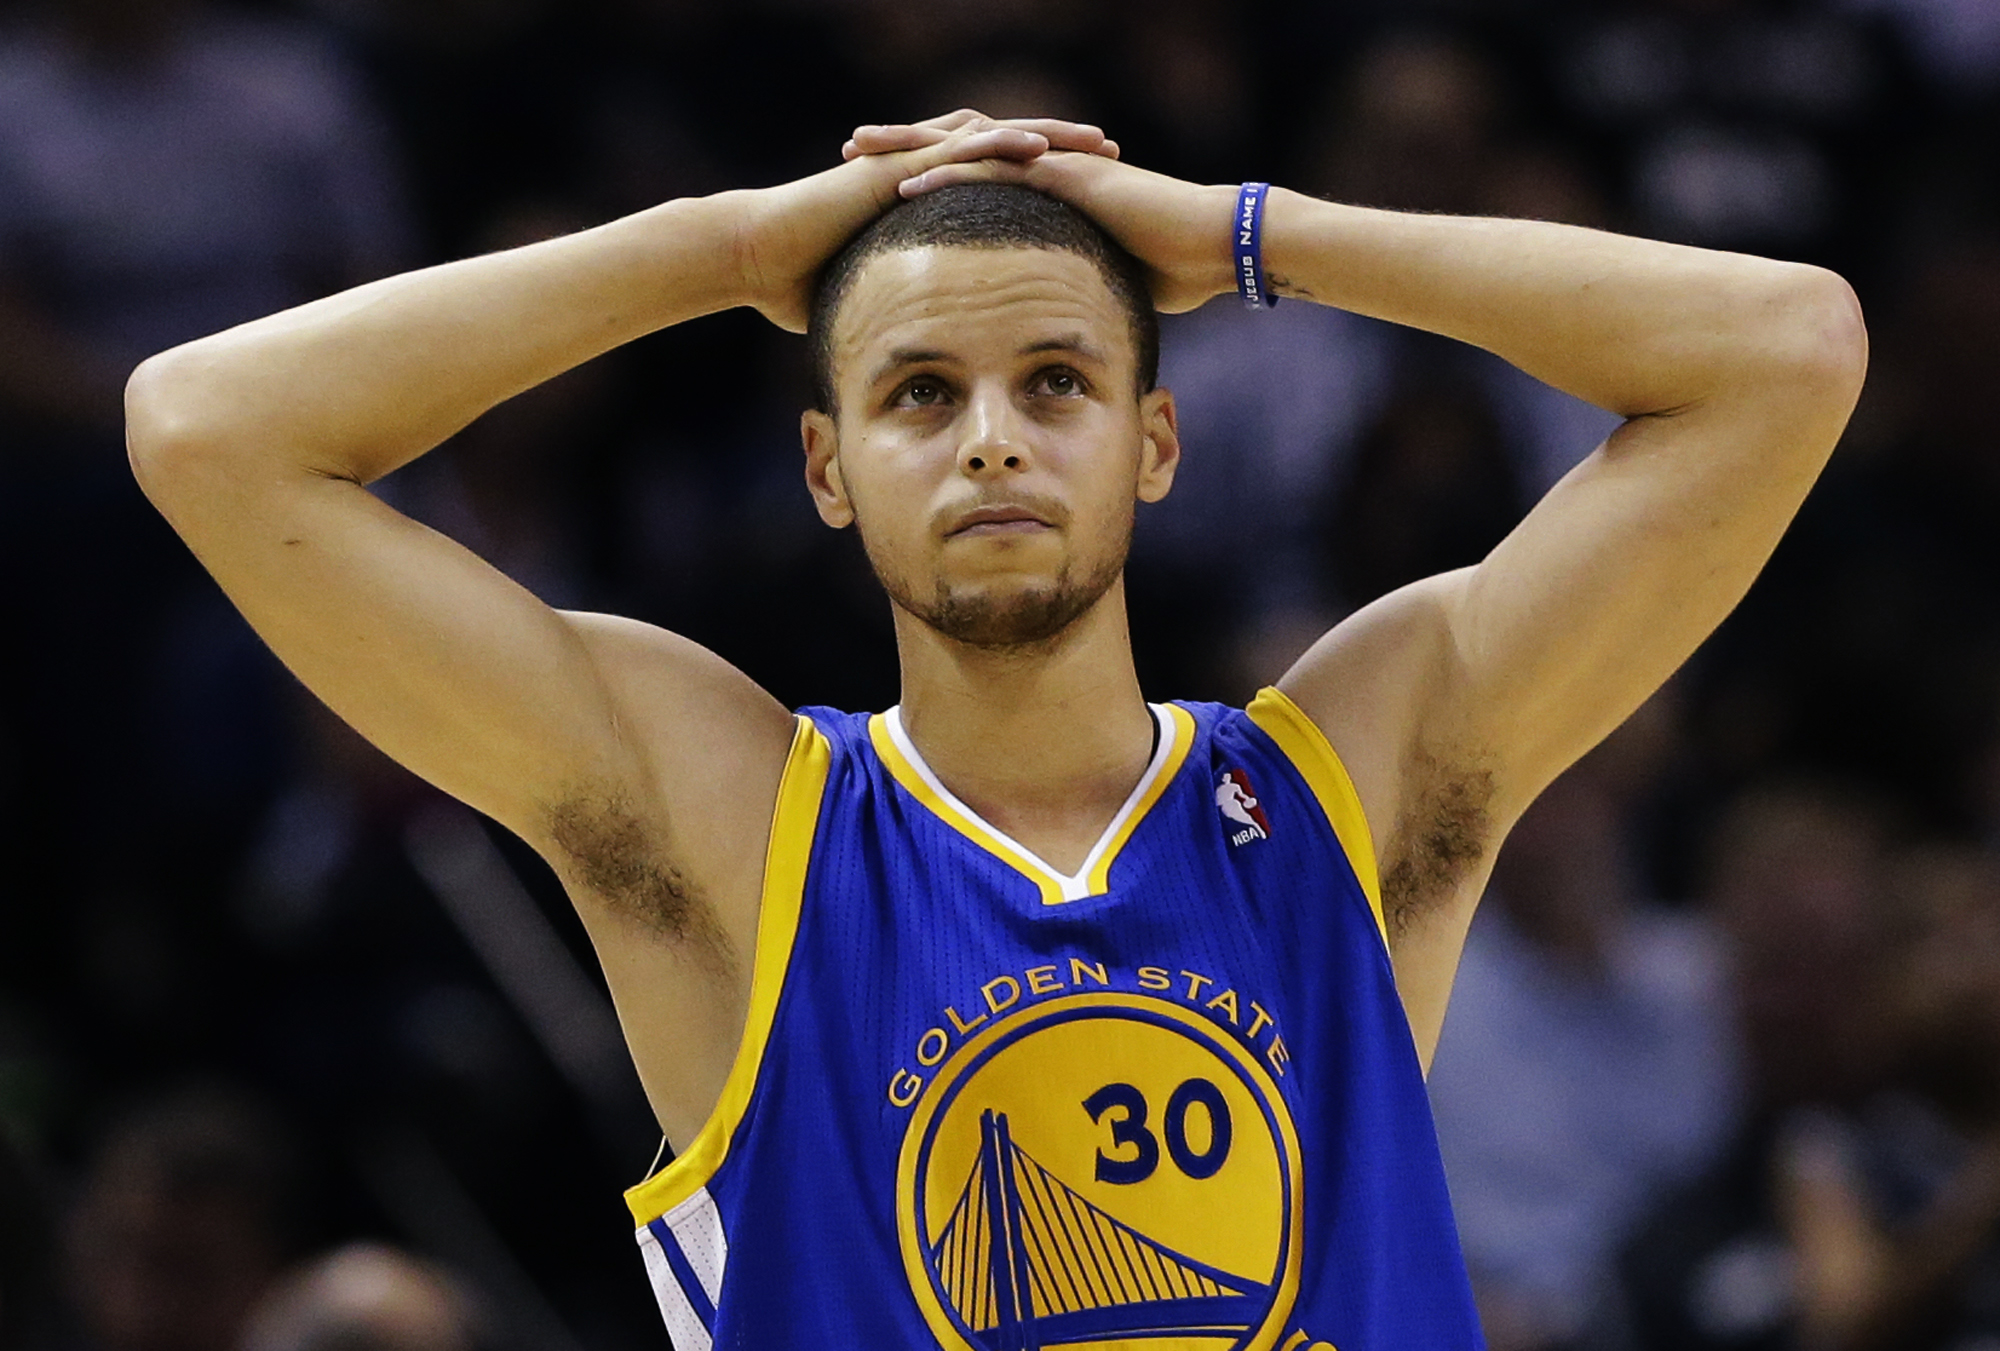 Stephen Curry scored nine points on 4-of-14 shooting in the Warriors' Game 5 loss to the Spurs. (AP)